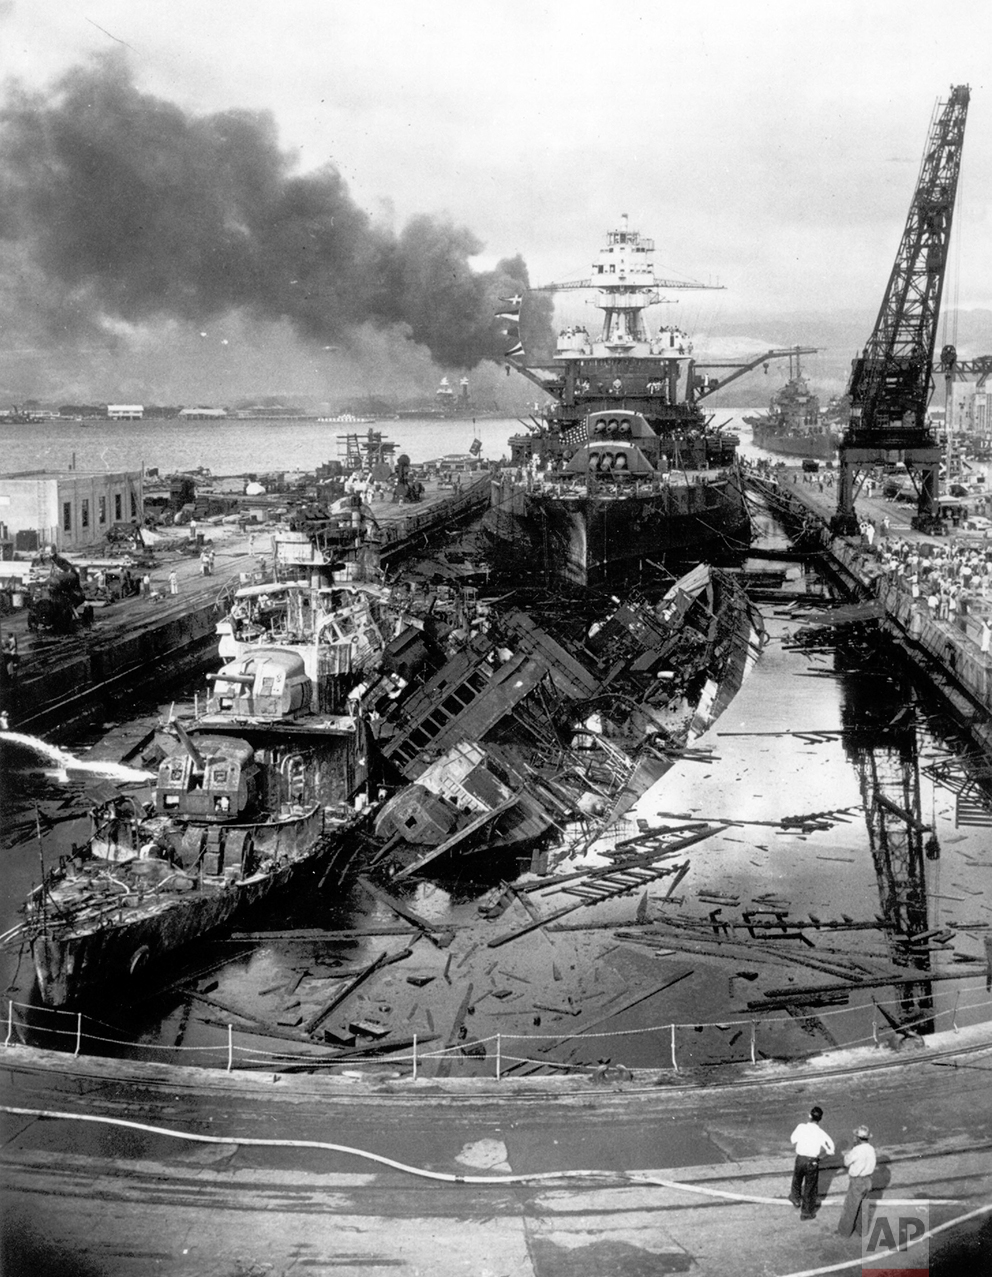 Black smoke rises from the burning wrecks of several  U.S. Navy battleships after they had been bombed during the Japanese surprise attack on Pearl Harbor, Hawaii, on December 7, 1941. (AP Photo)